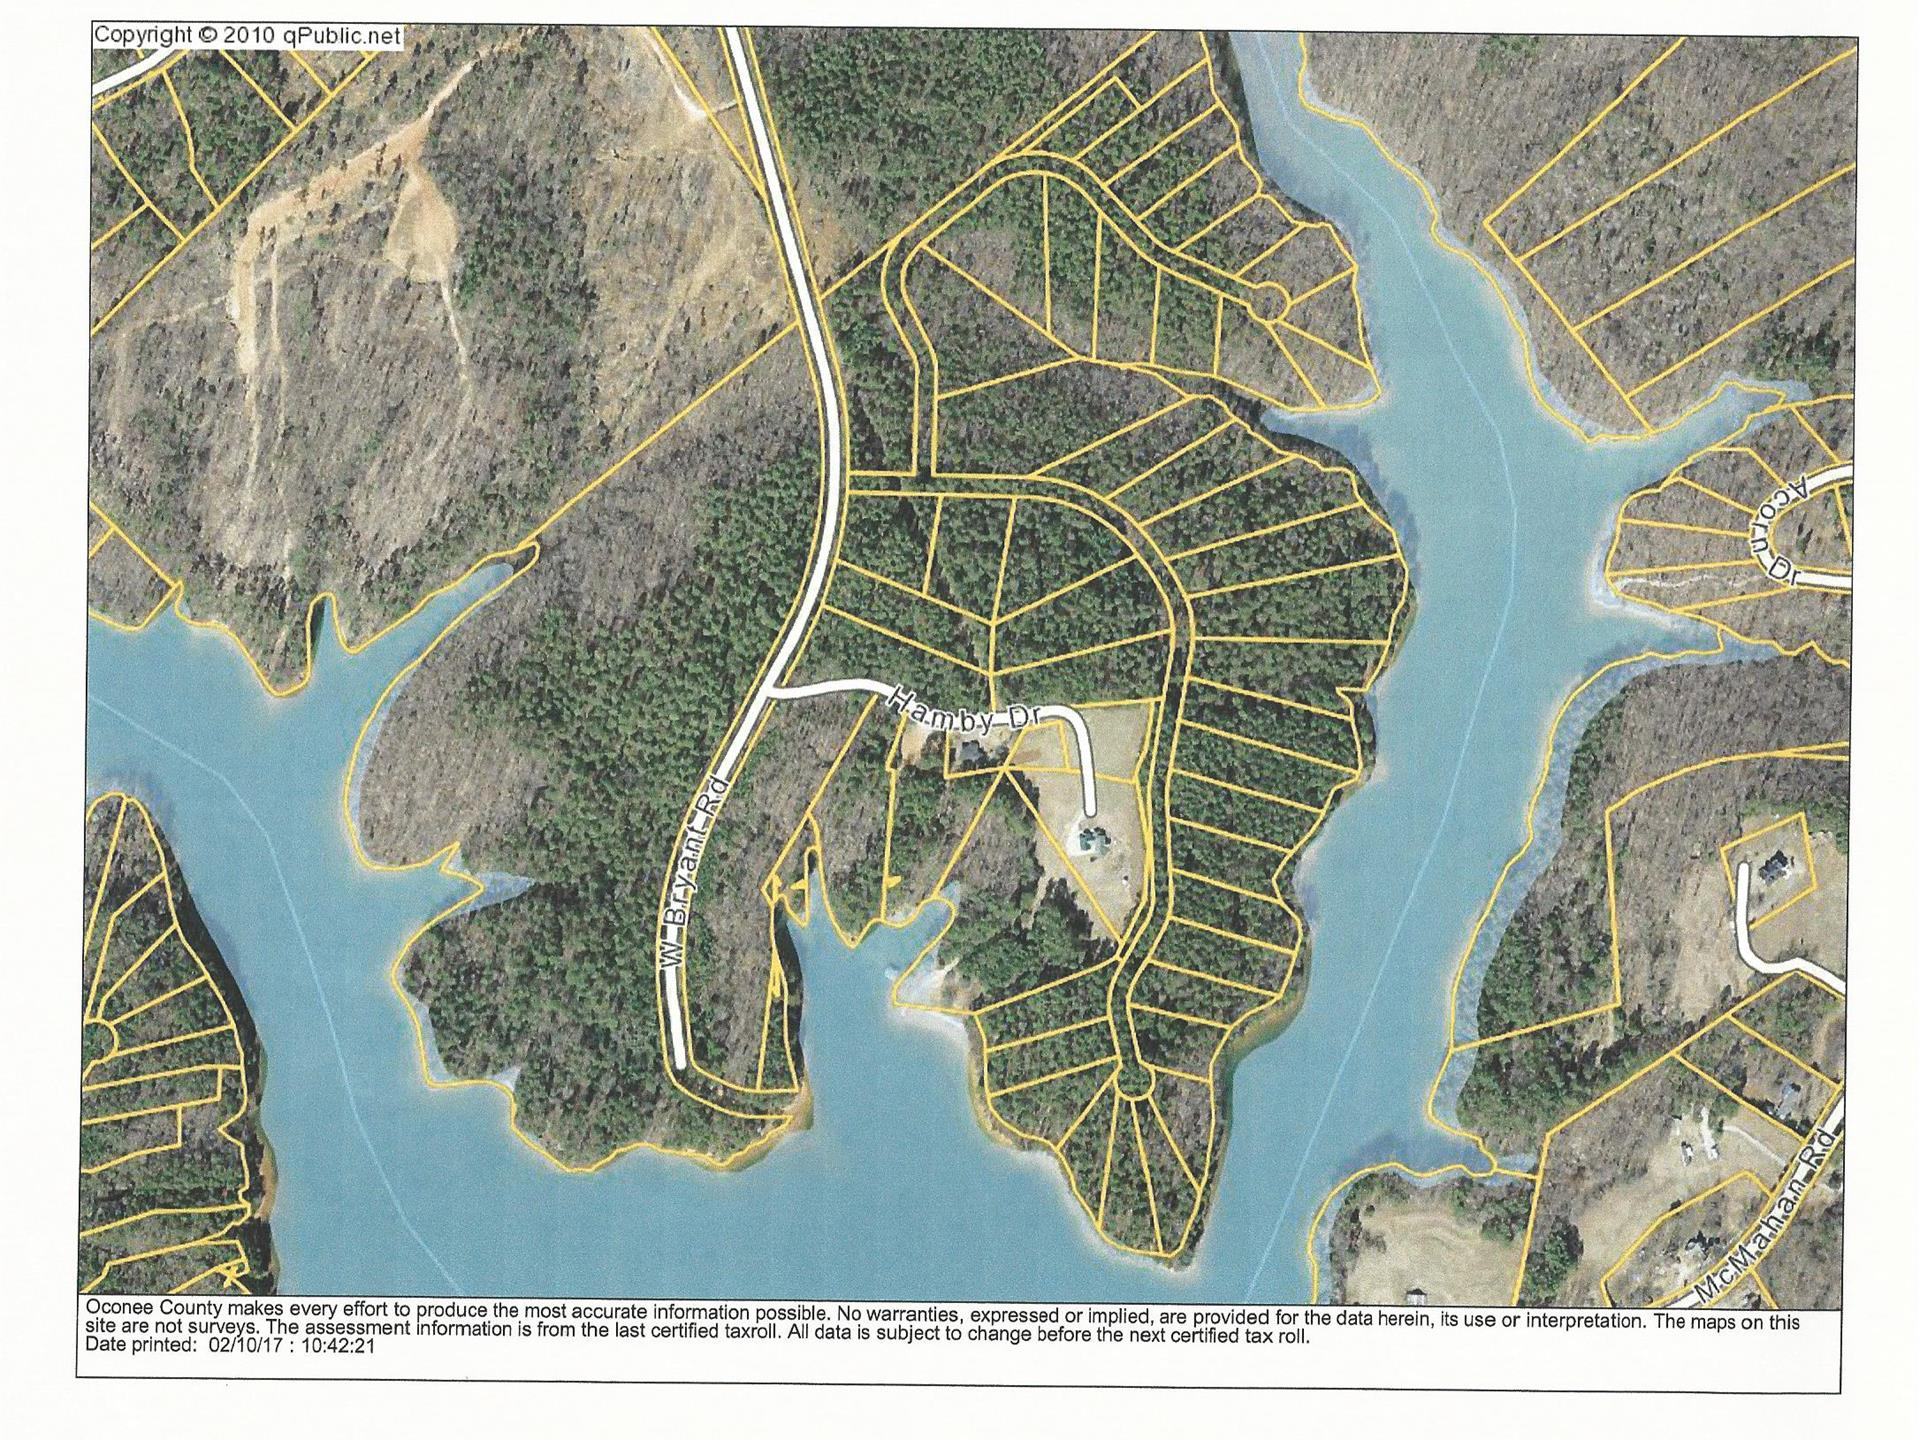 Sunset Cove Lake Lot Land For Sale West Union Oconee County